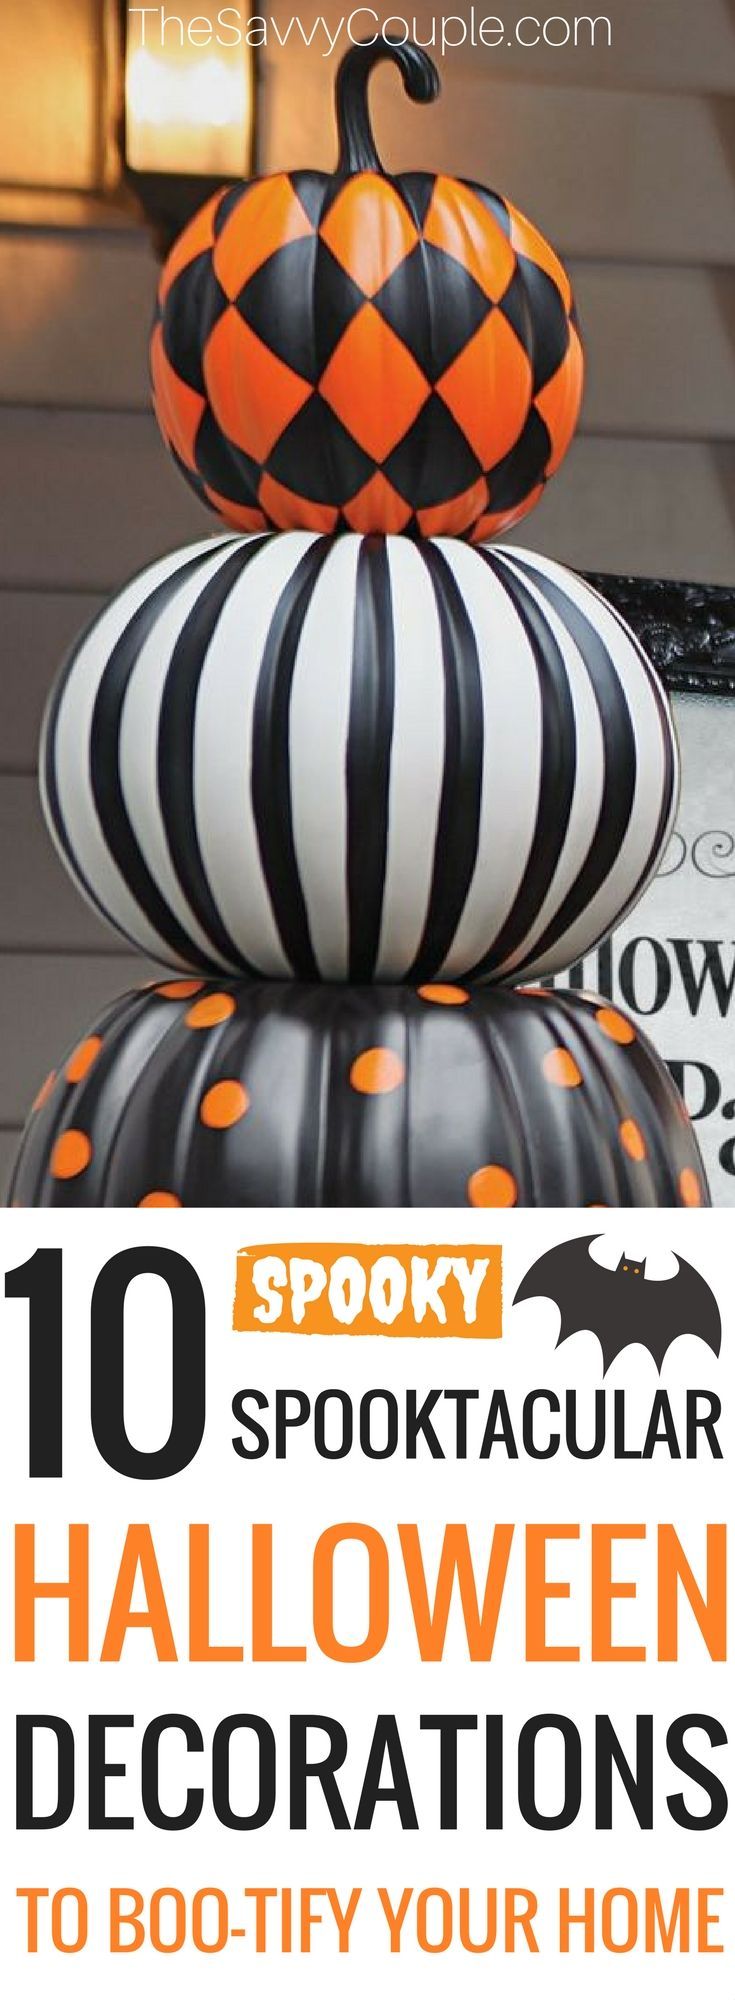 337 best Fall - Halloween crafts images on Pinterest Halloween - halloween decorations diy